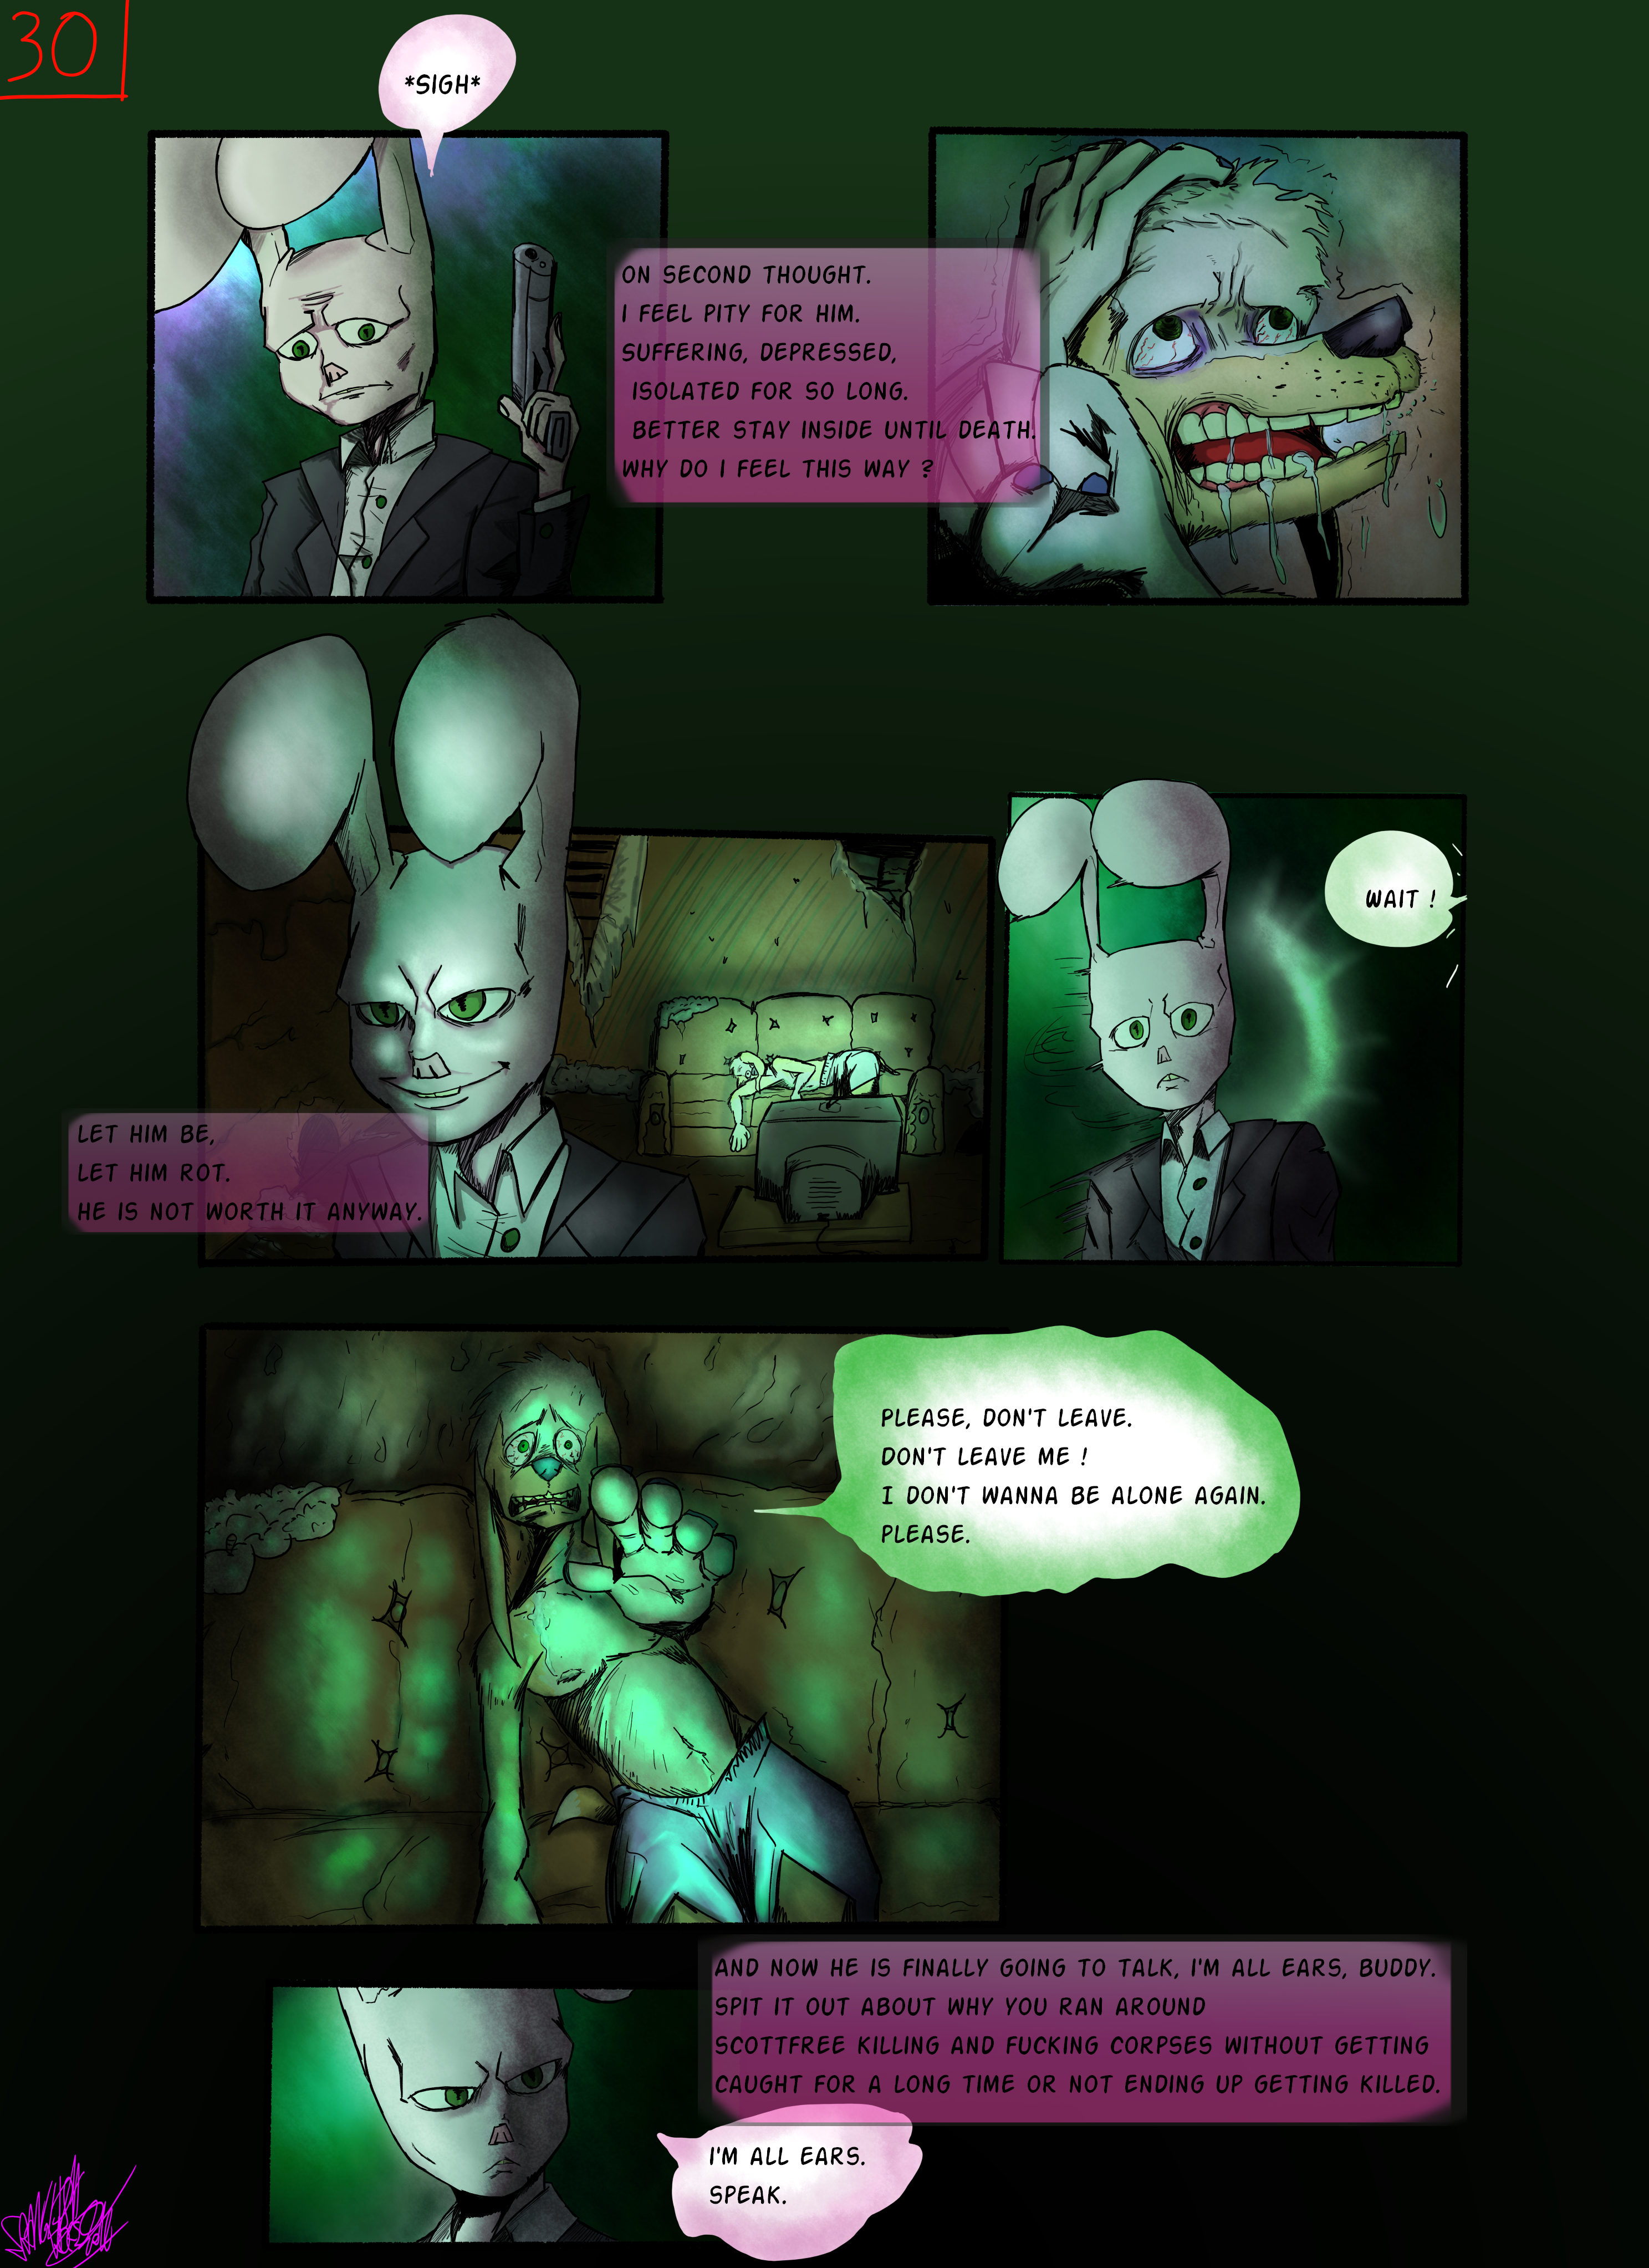 Bob the Psycho Rabbit Vs Alfred Alfer Page 30 (comic) (30/39)